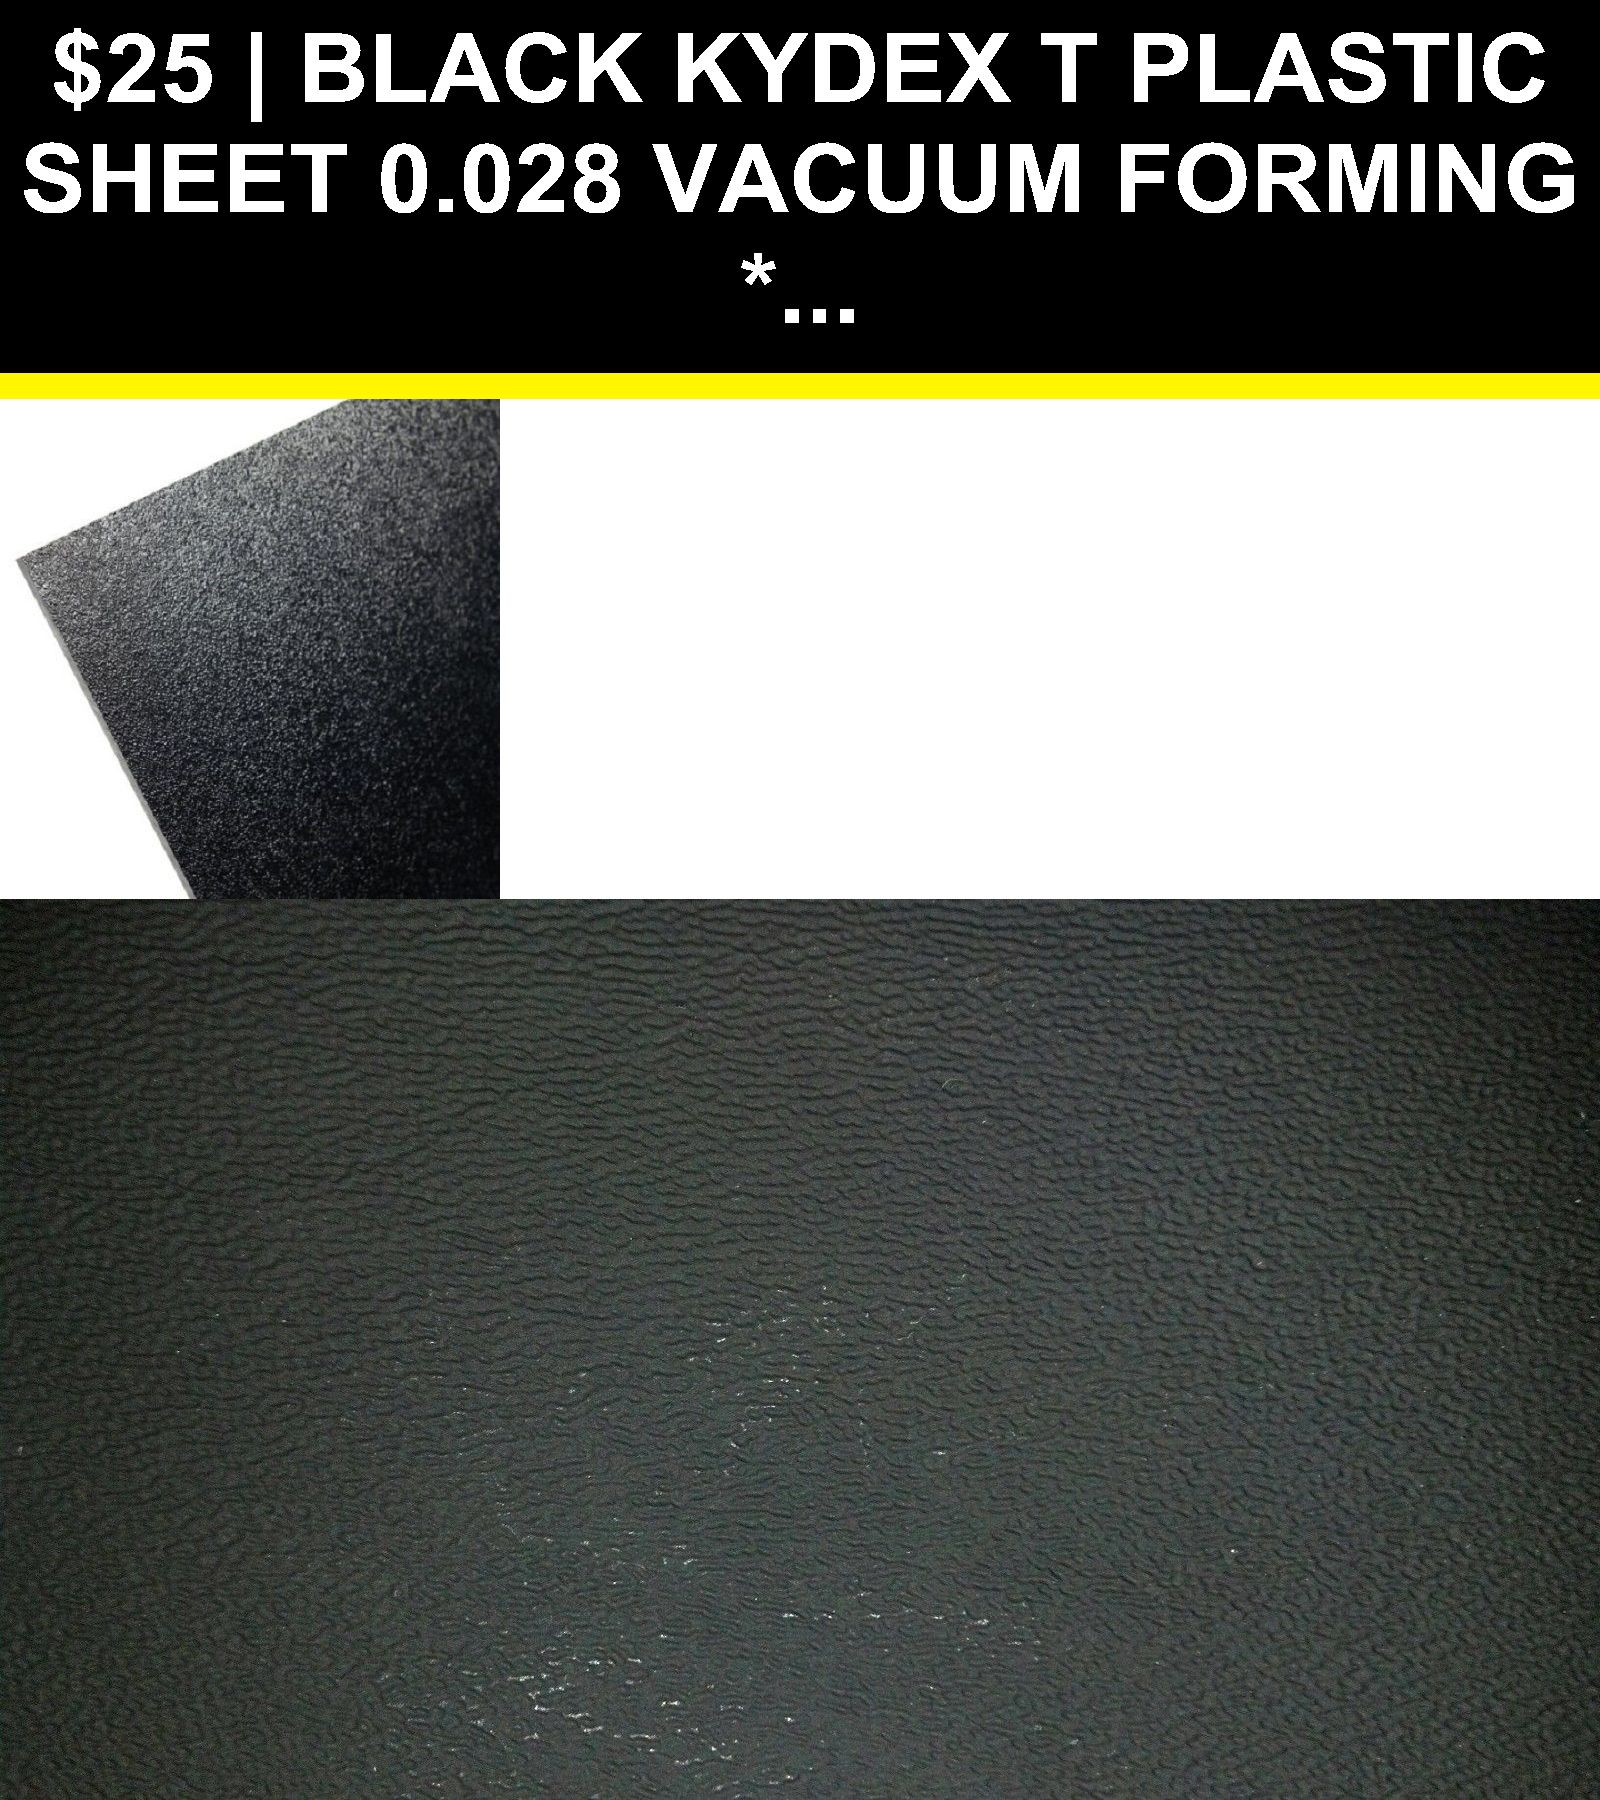 Black Kydex T Plastic Sheet 0 028 Vacuum Forming You Pick Size Ebay Plastic Sheets Kydex Vacuum Forming